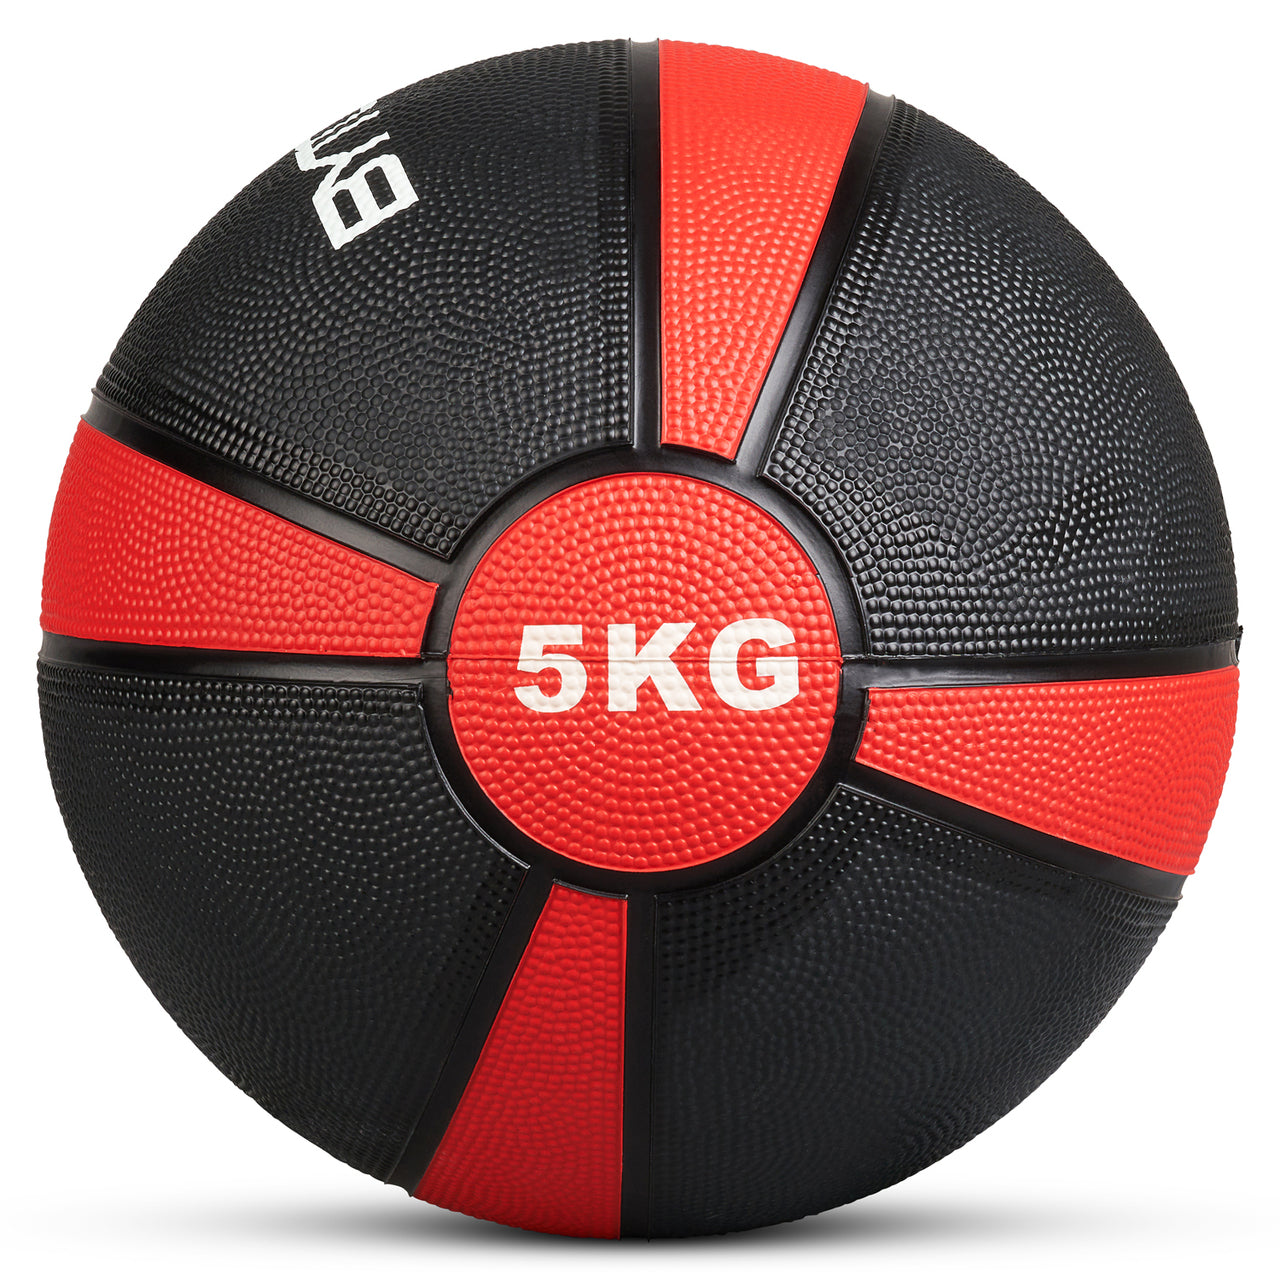 Bytomic 5kg Rubber Medicine Ball, Exercise & Fitness by Fight Co